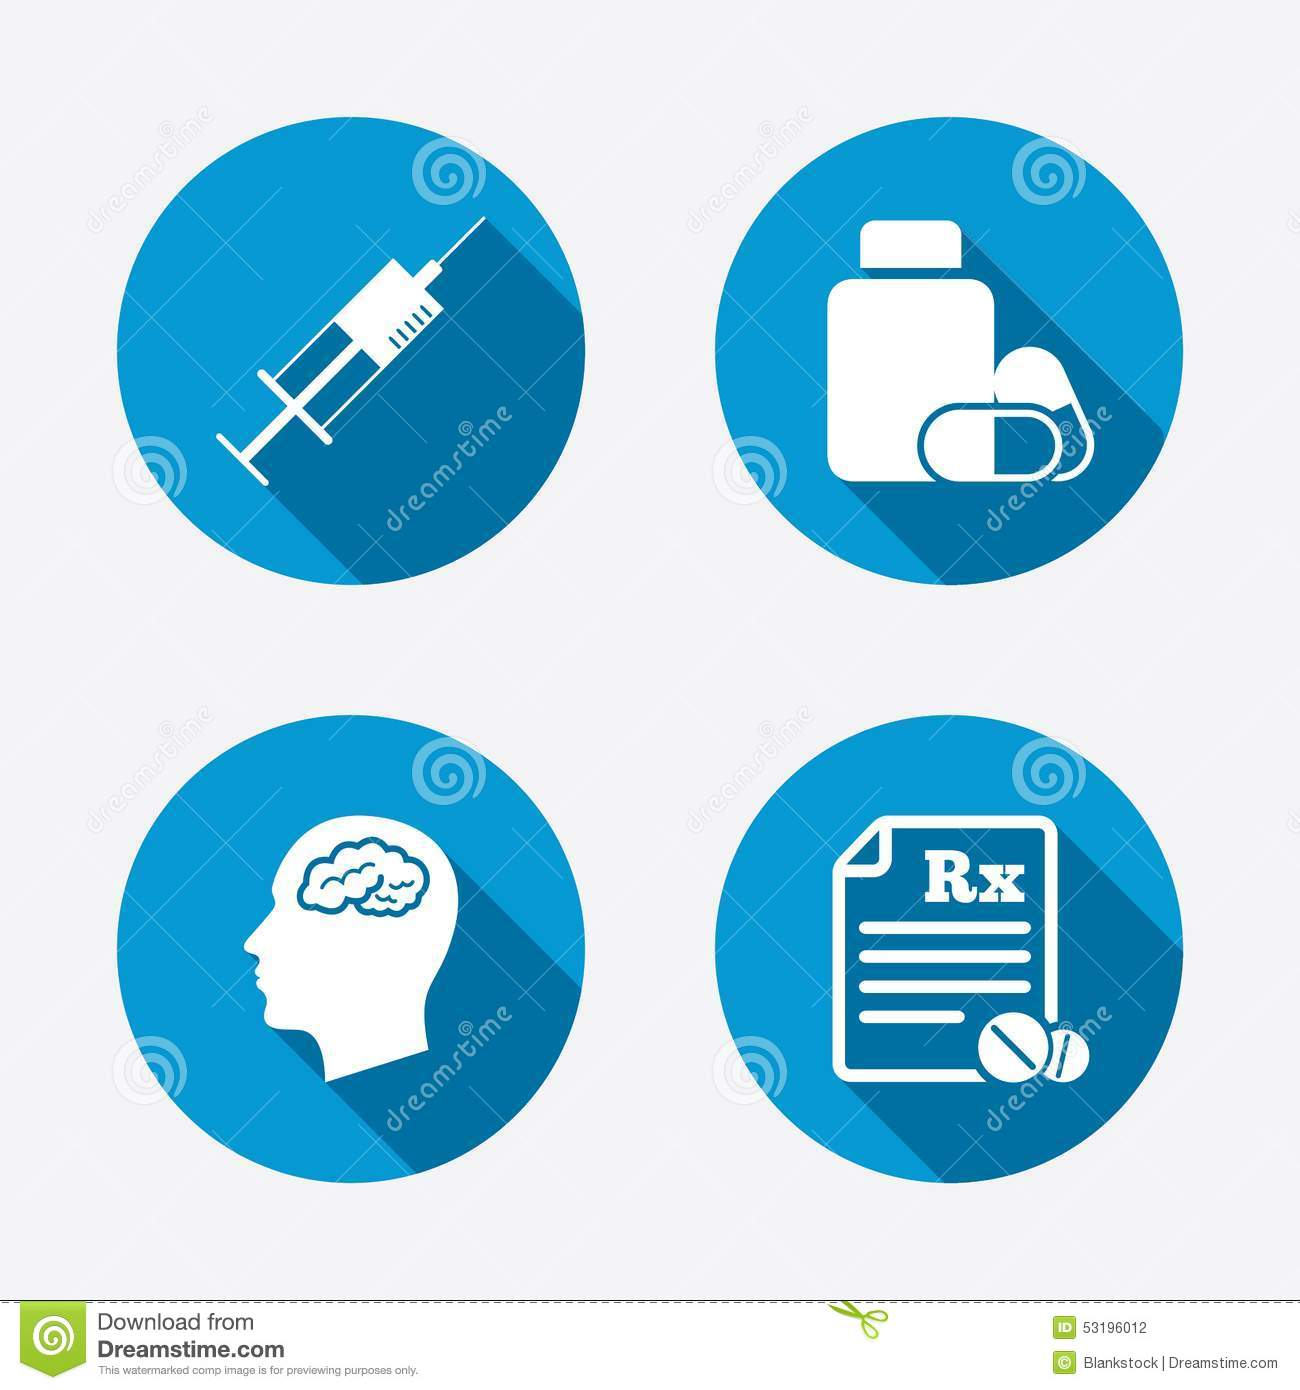 Medicine icons tablets bottle brain rx stock vector medicine icons tablets bottle brain rx buycottarizona